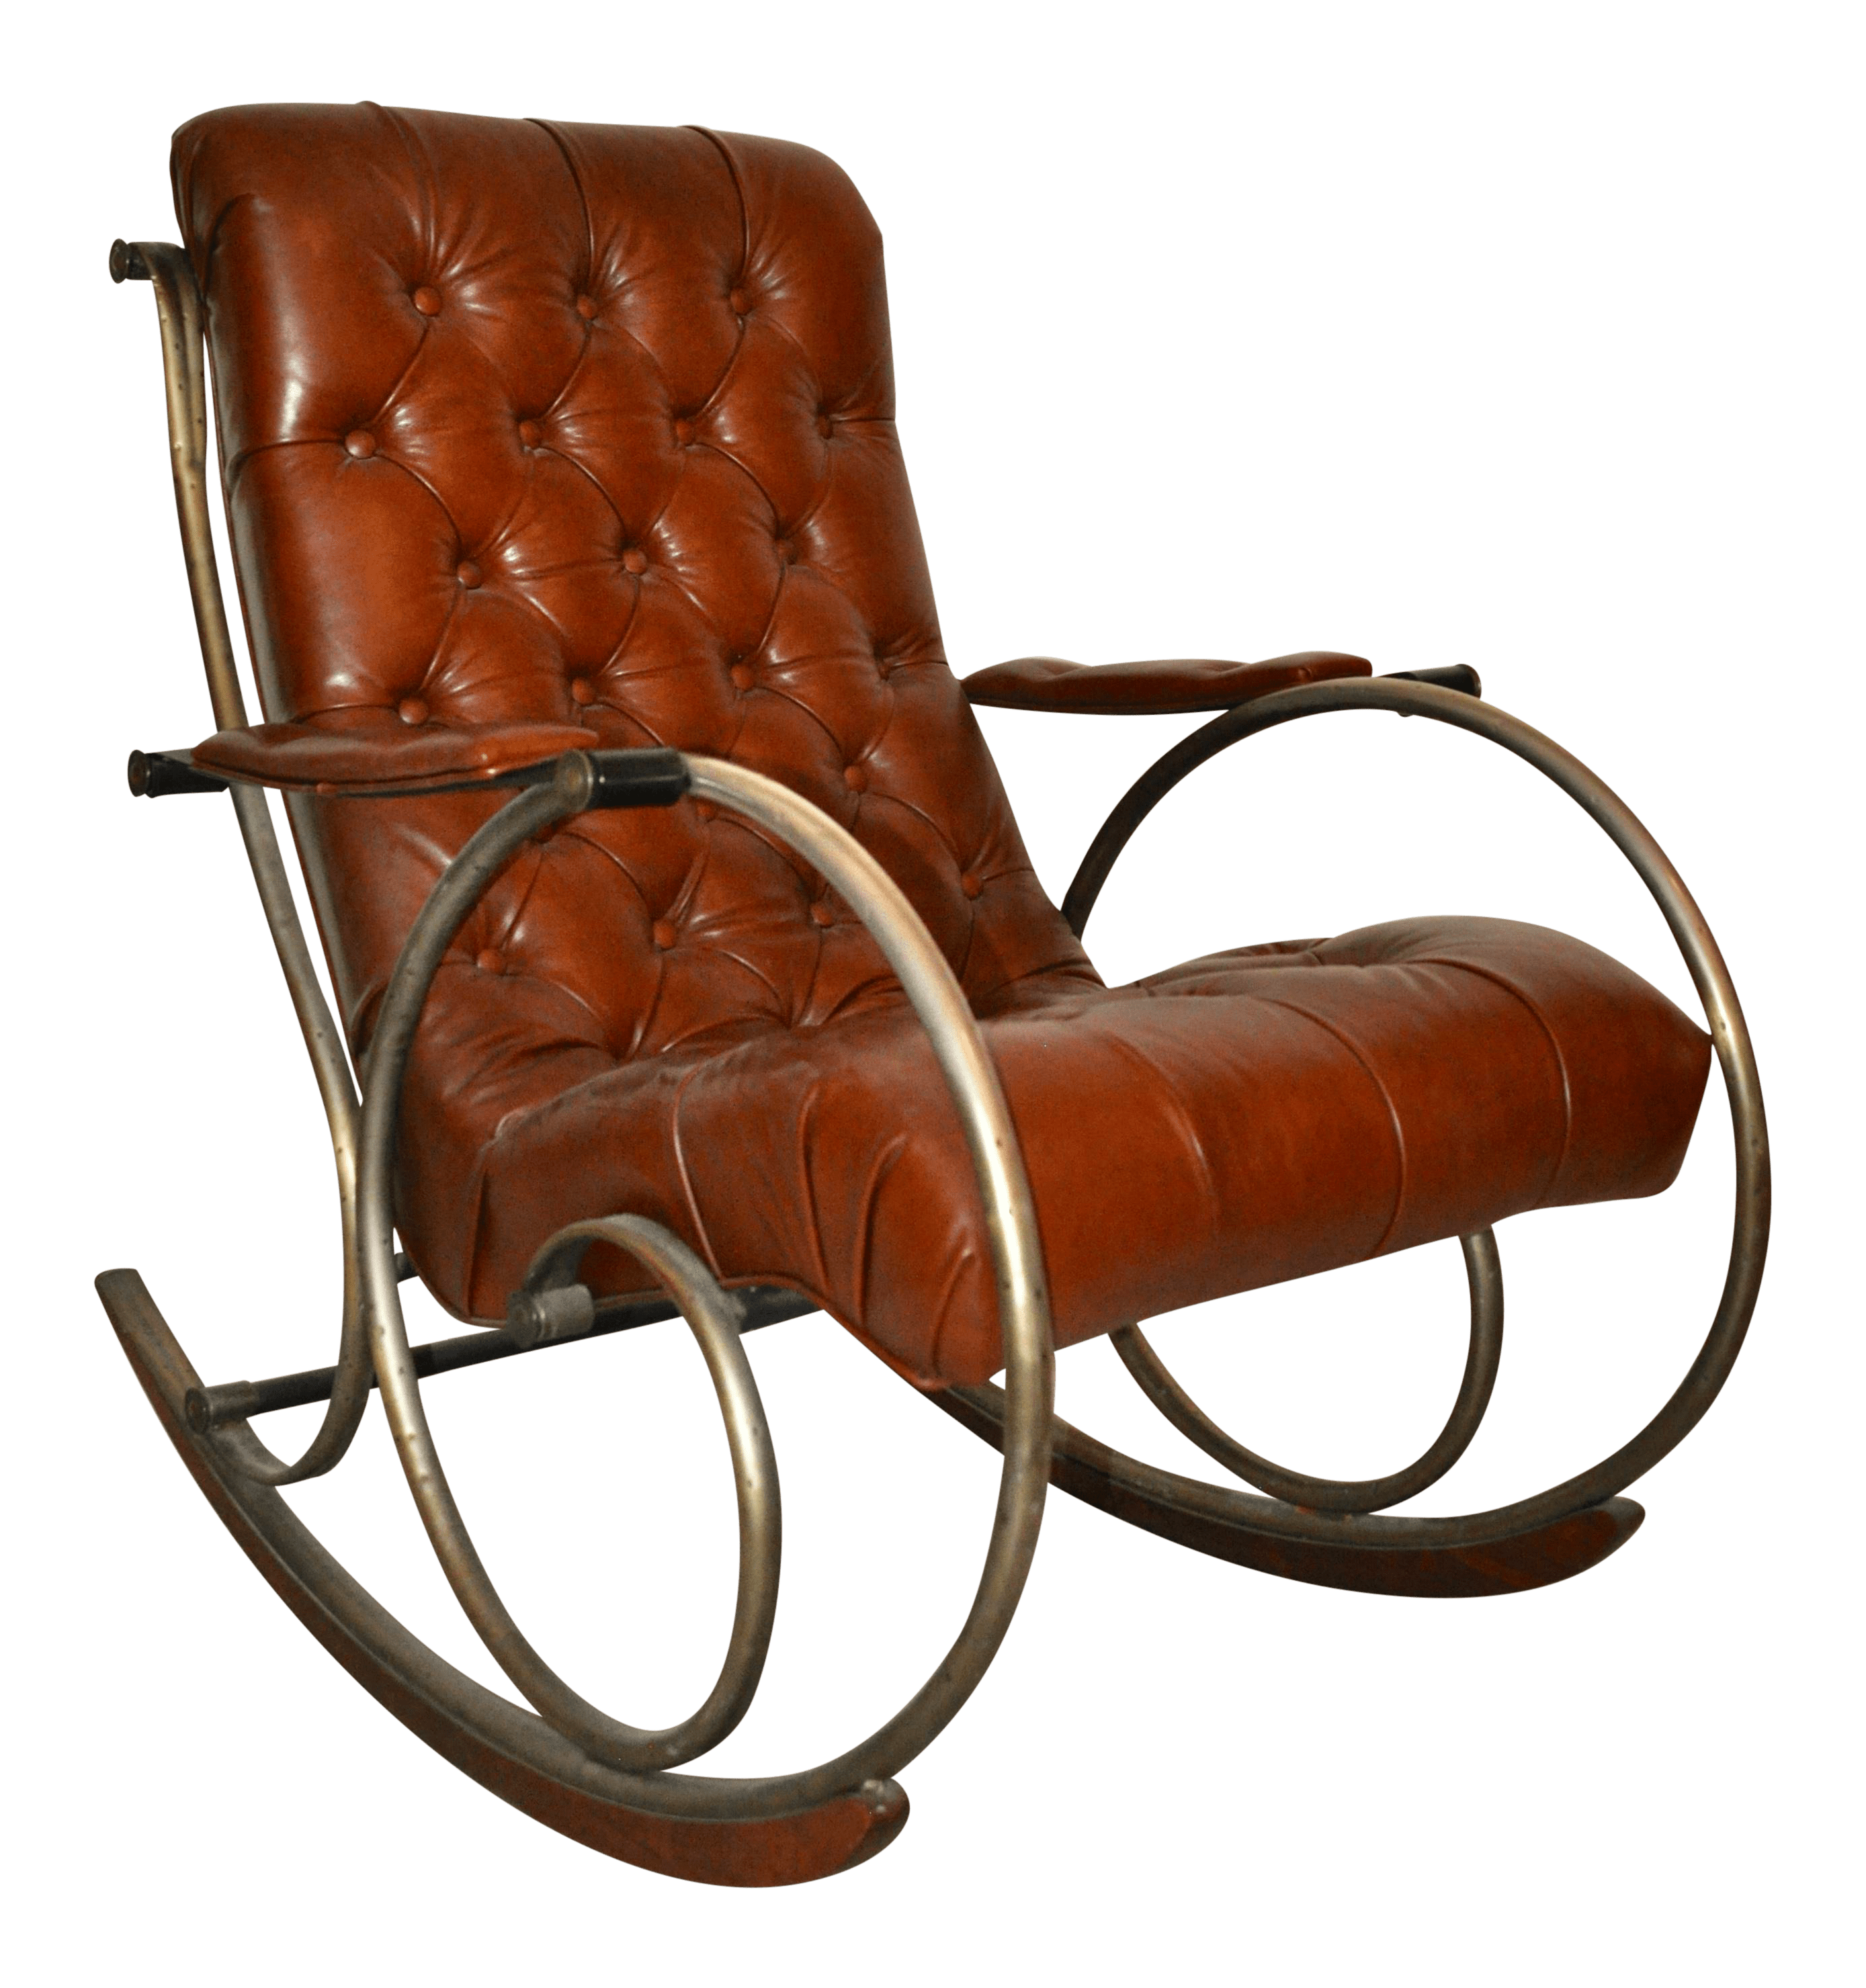 Leather Rocking Chair Antique Brass Steel Leather Rocking Chair